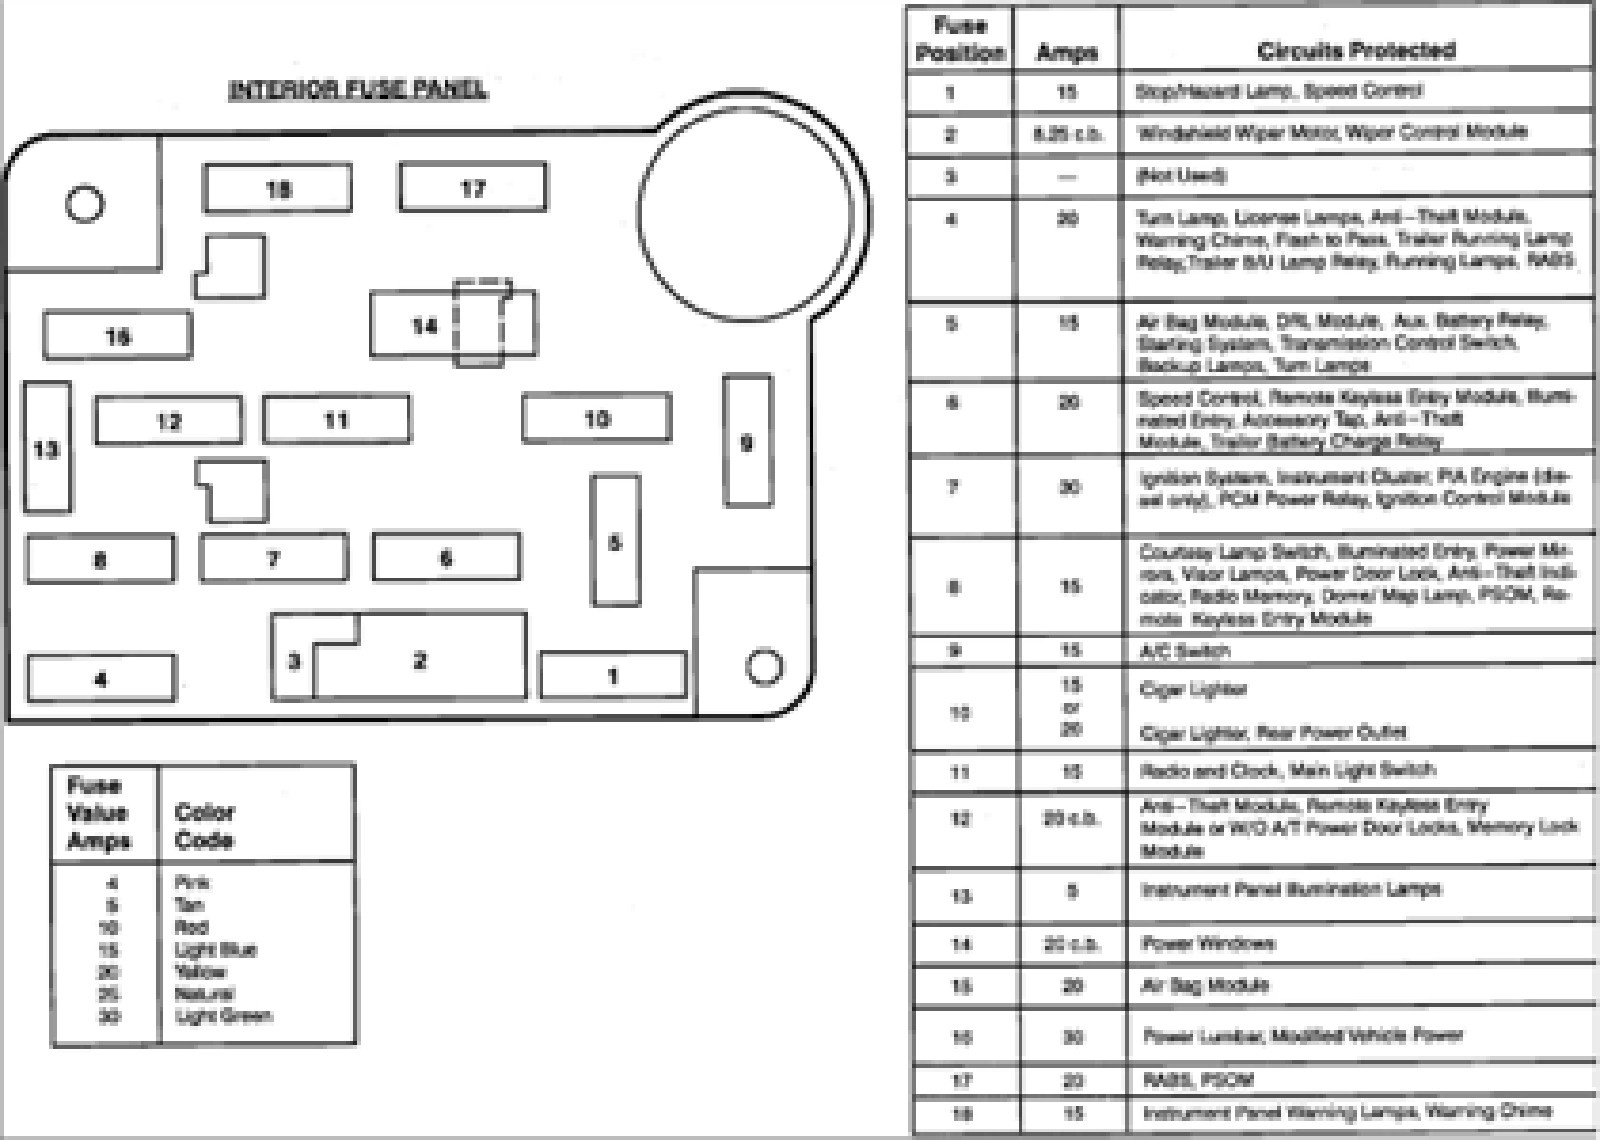 1993 Gmc Sierra Fuse Box Diagram The Portal And Forum Of Wiring 1988 Diagrams 1990 Todays Rh 10 12 7 1813weddingbarn Com List 1999